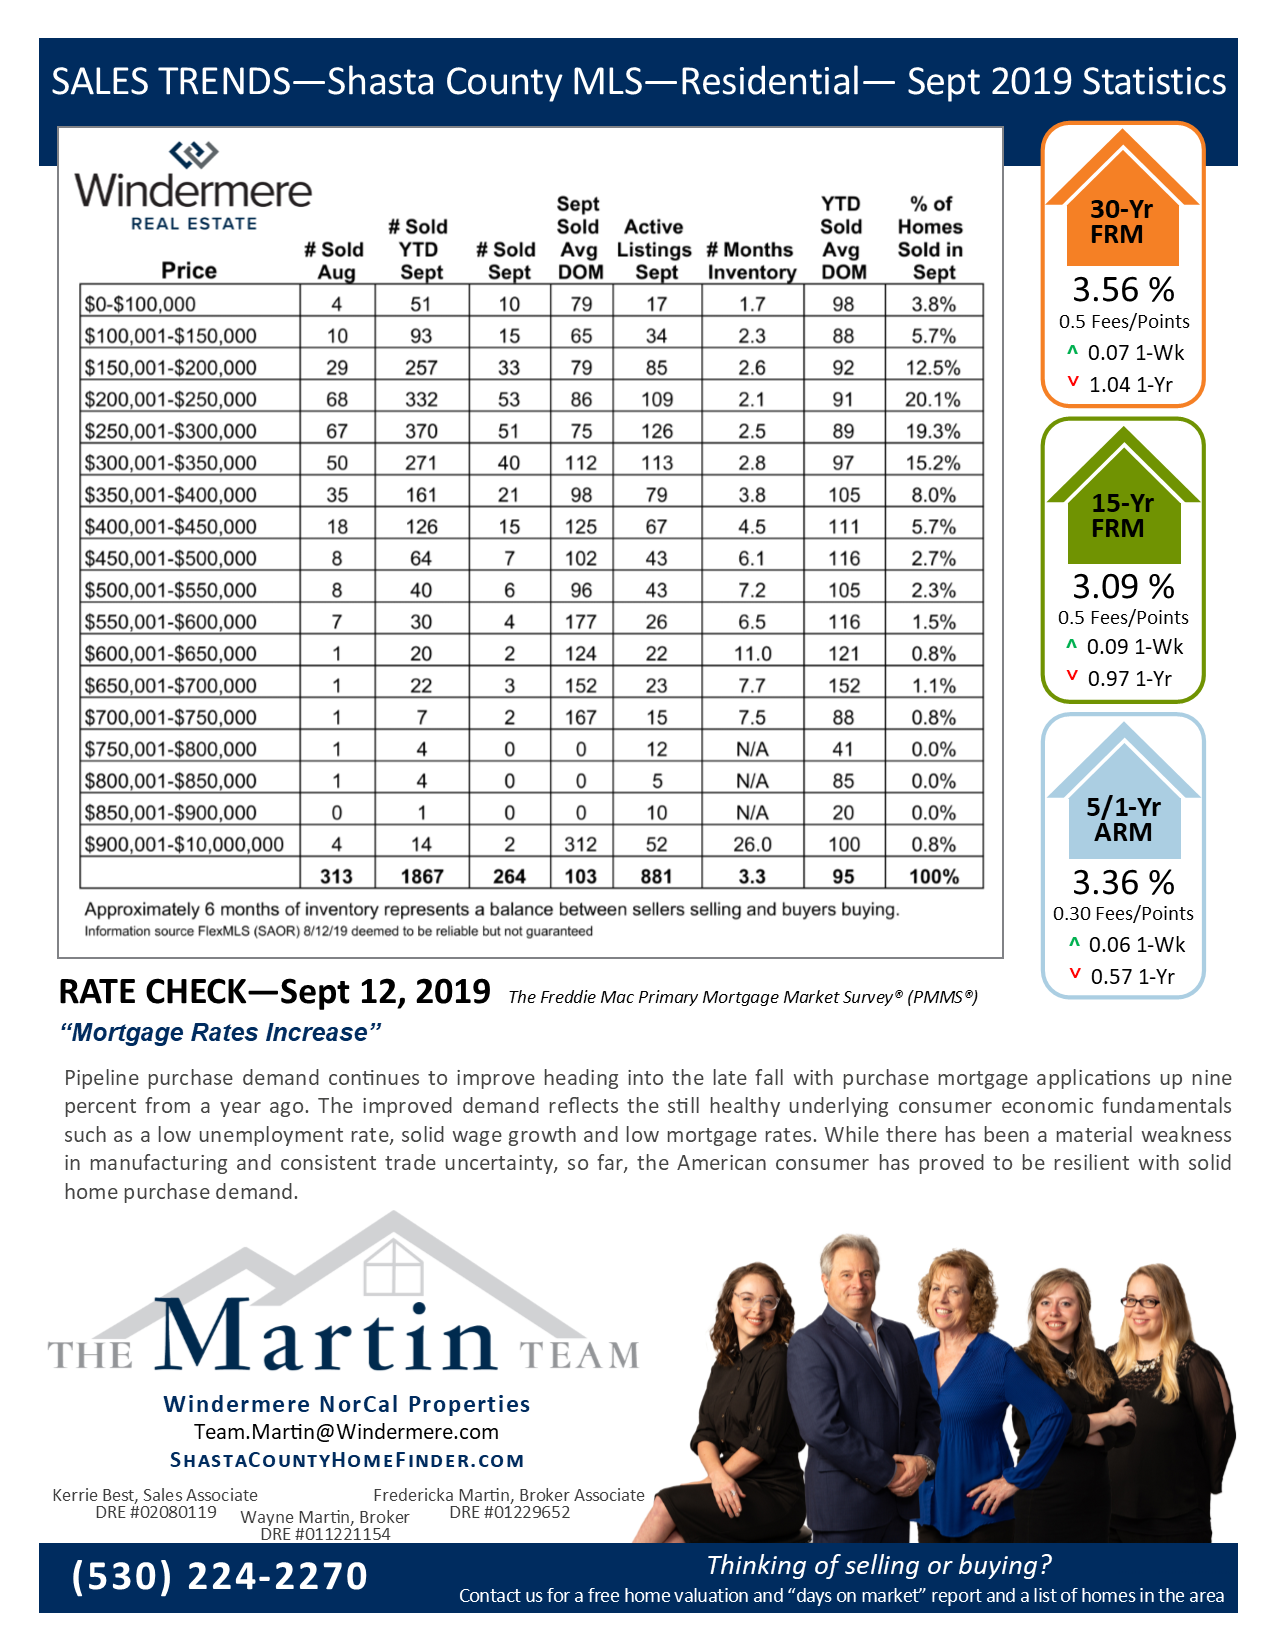 Sales Trends Reports Sept 2019. Mortgage rates and statistics on residential sales for Sept 2019.